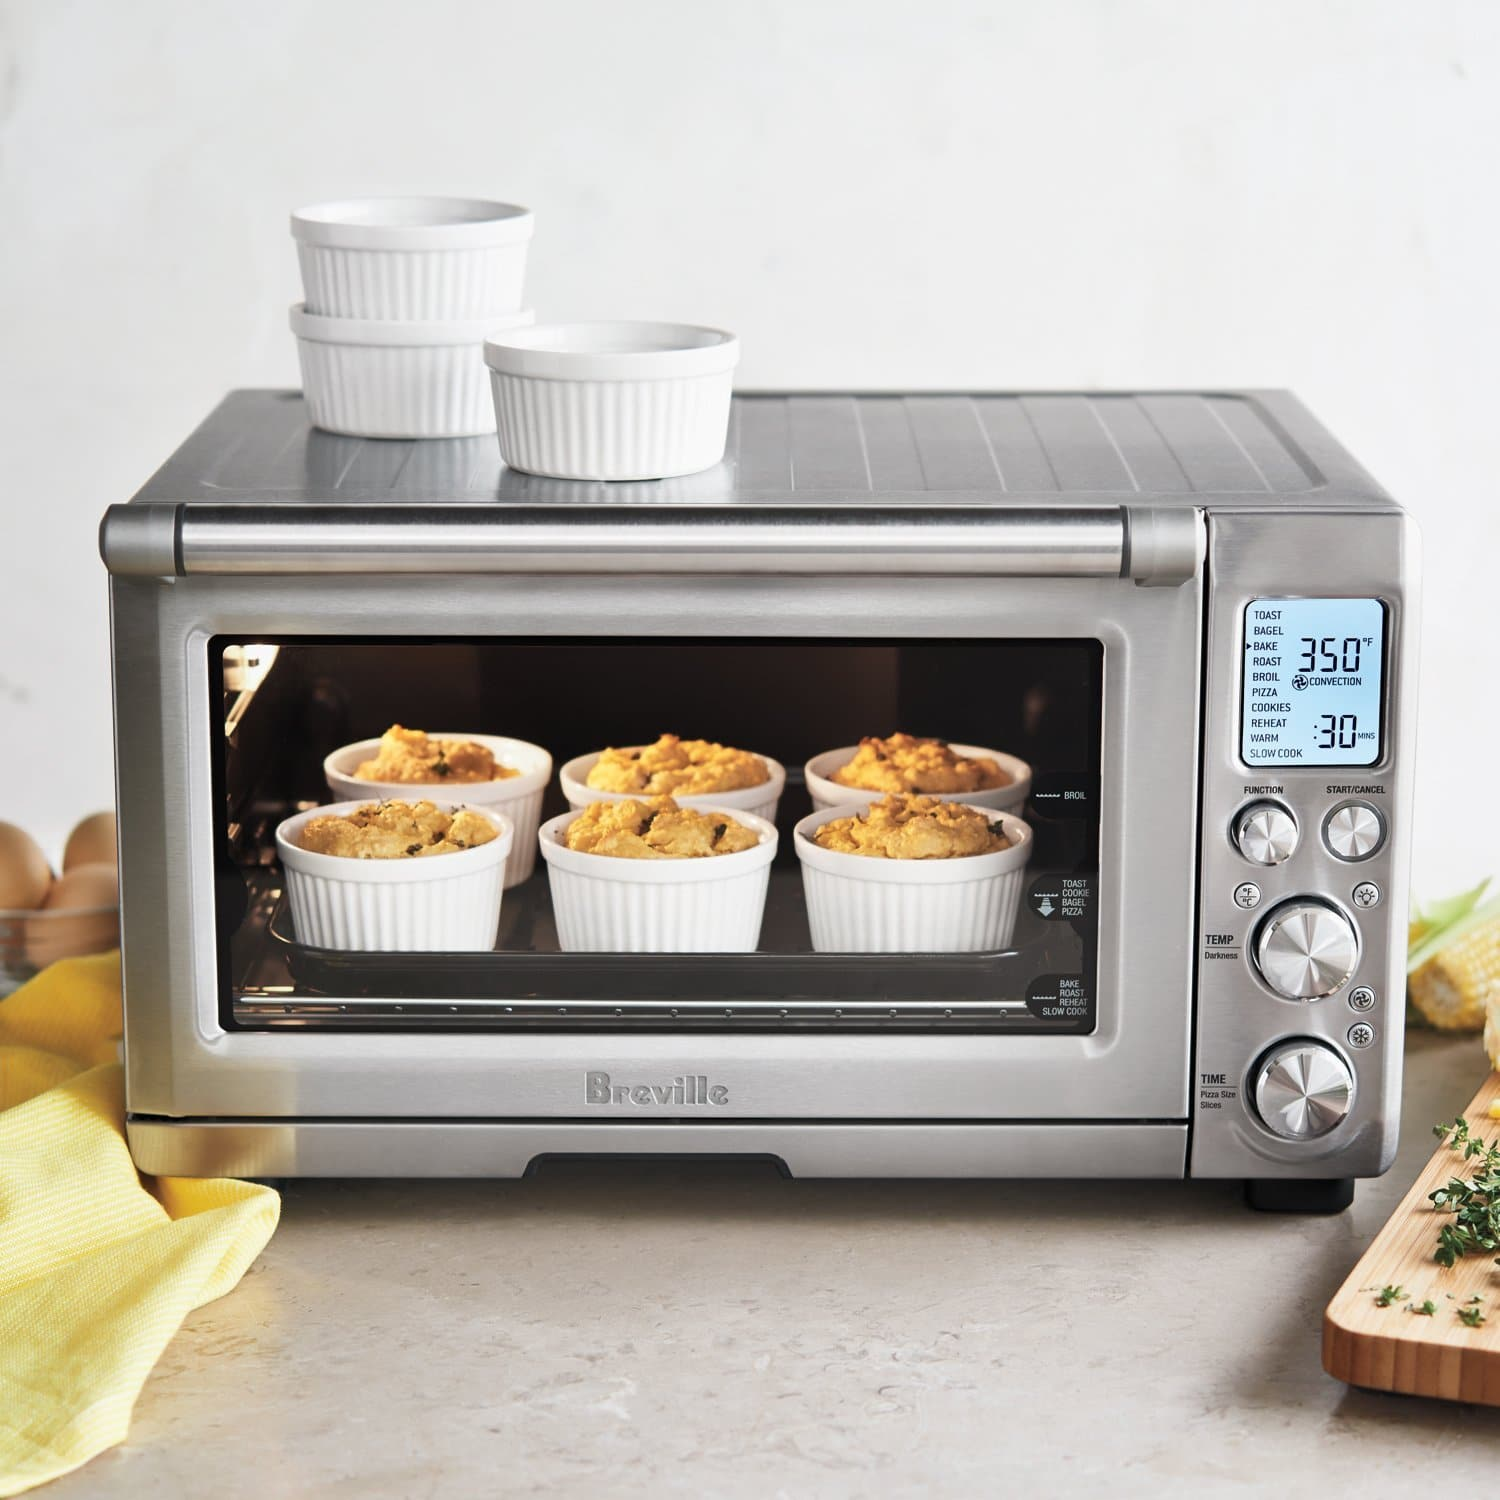 Breville Bov845bss Smart Oven Pro Review 2019 ⋆ Ybkitchen